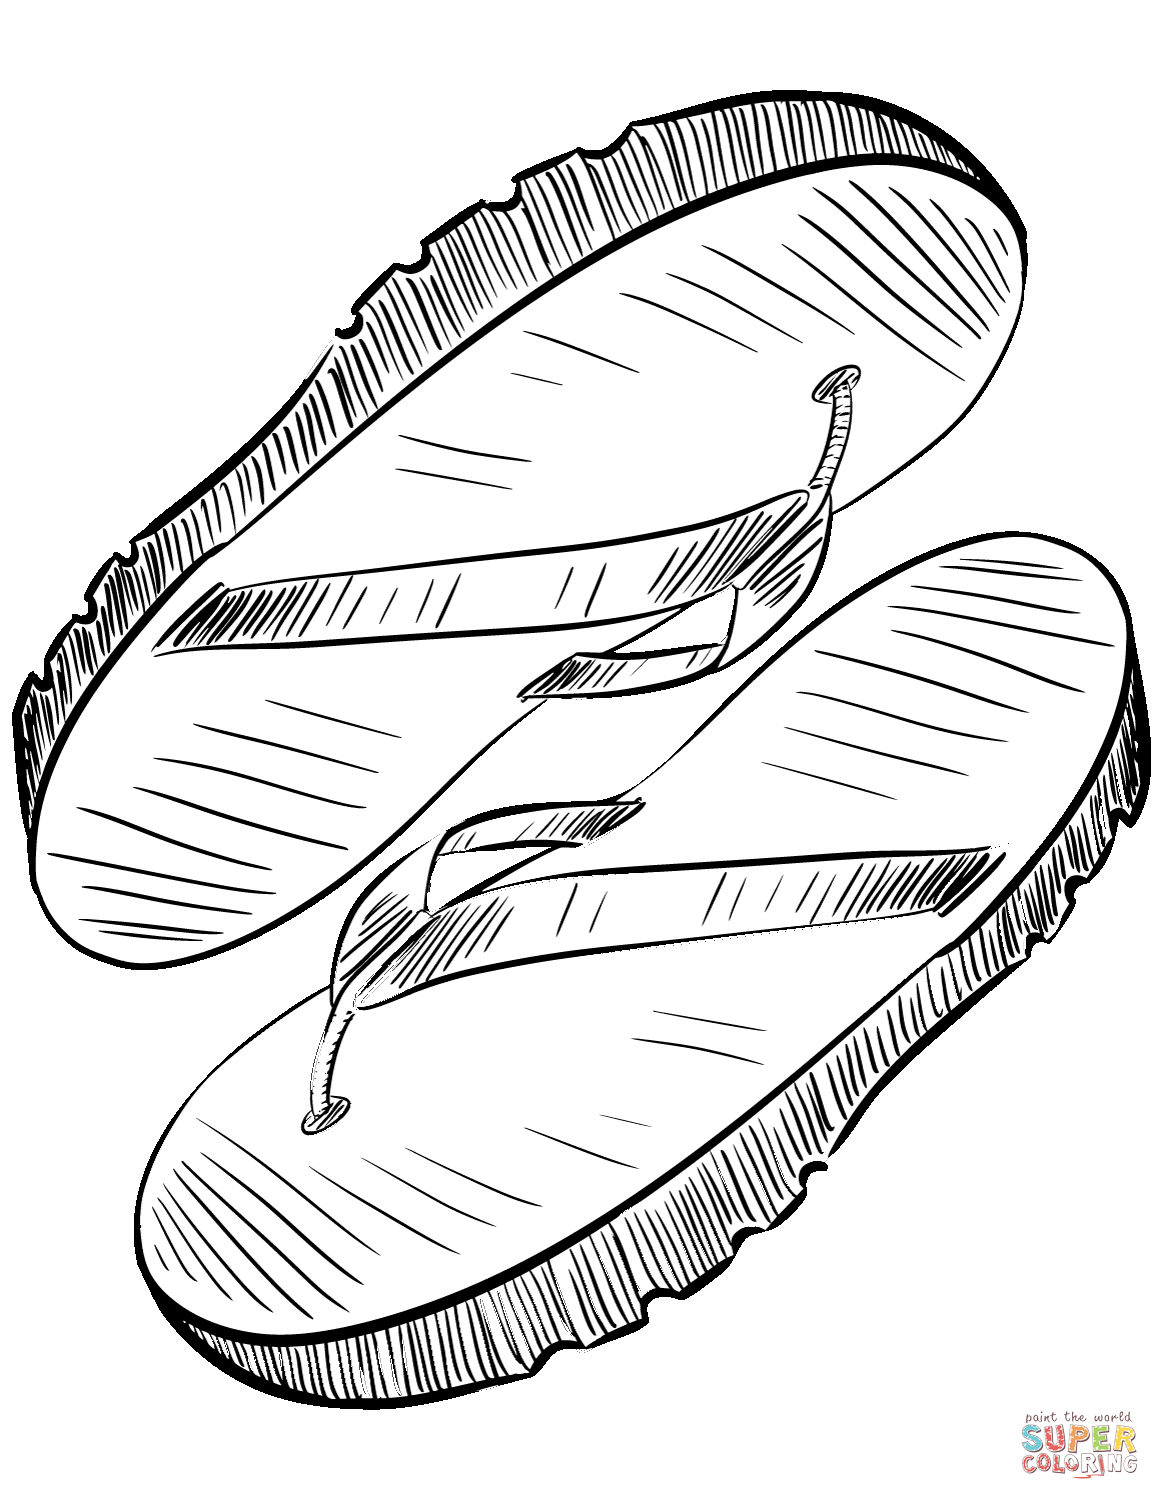 Flip Flop Coloring Pages Flip Flops Coloring Page Free Printable Coloring Pages